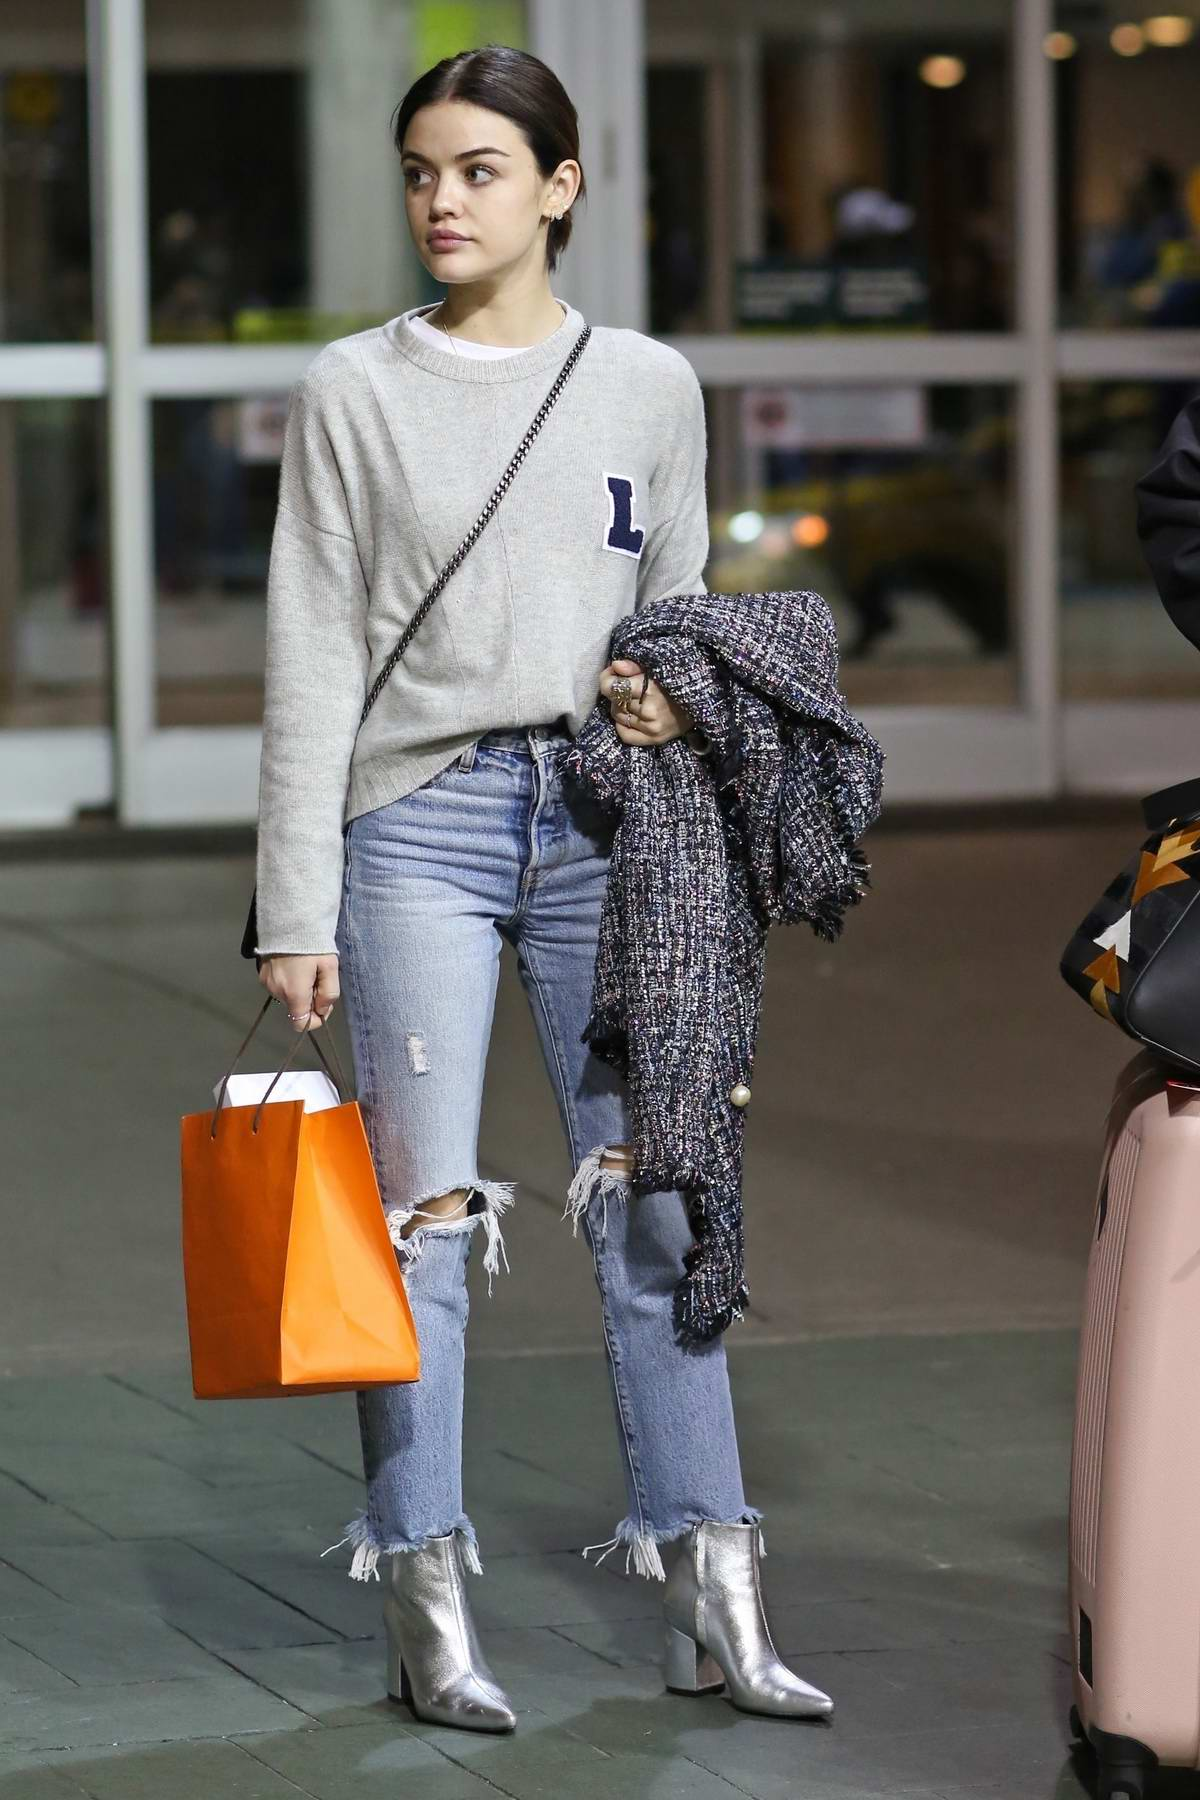 Lucy Hale spotted at Vancouver airport as she arrives back in Vancouver, Canada